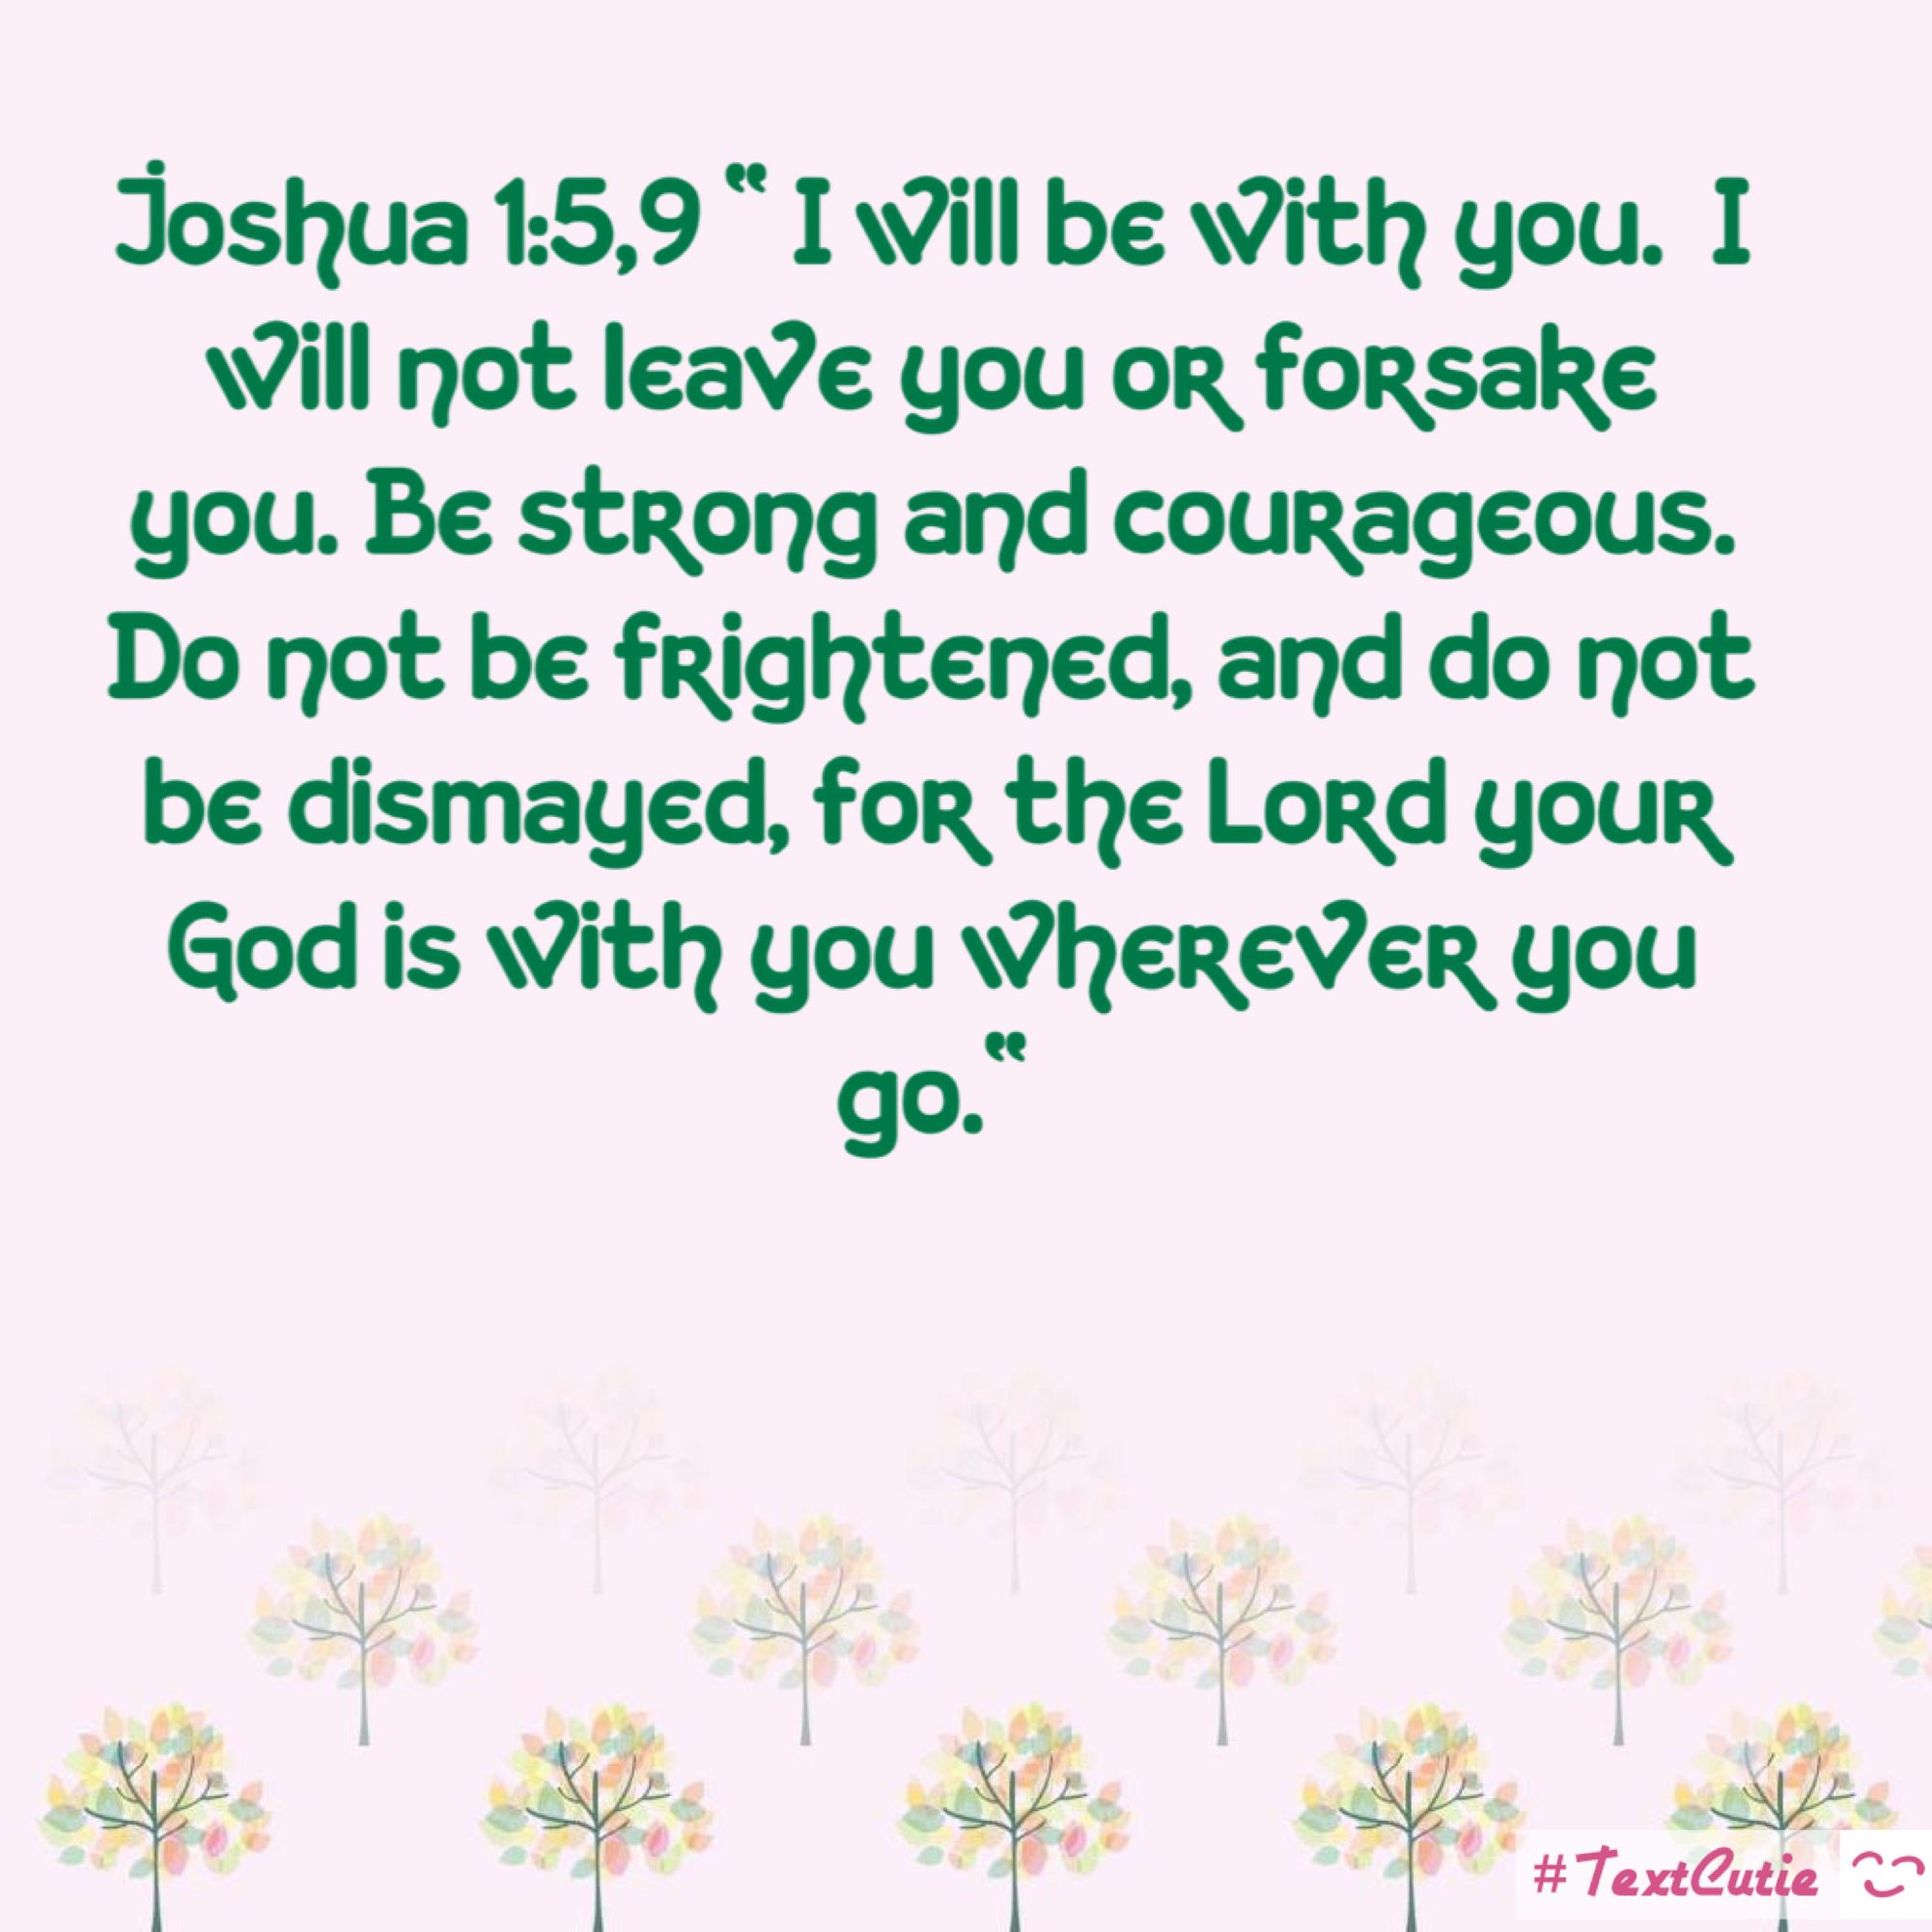 Joshua 1:5 I will not leave you or forsake you Bible verse vinyl decal sticker White Black Red Blue